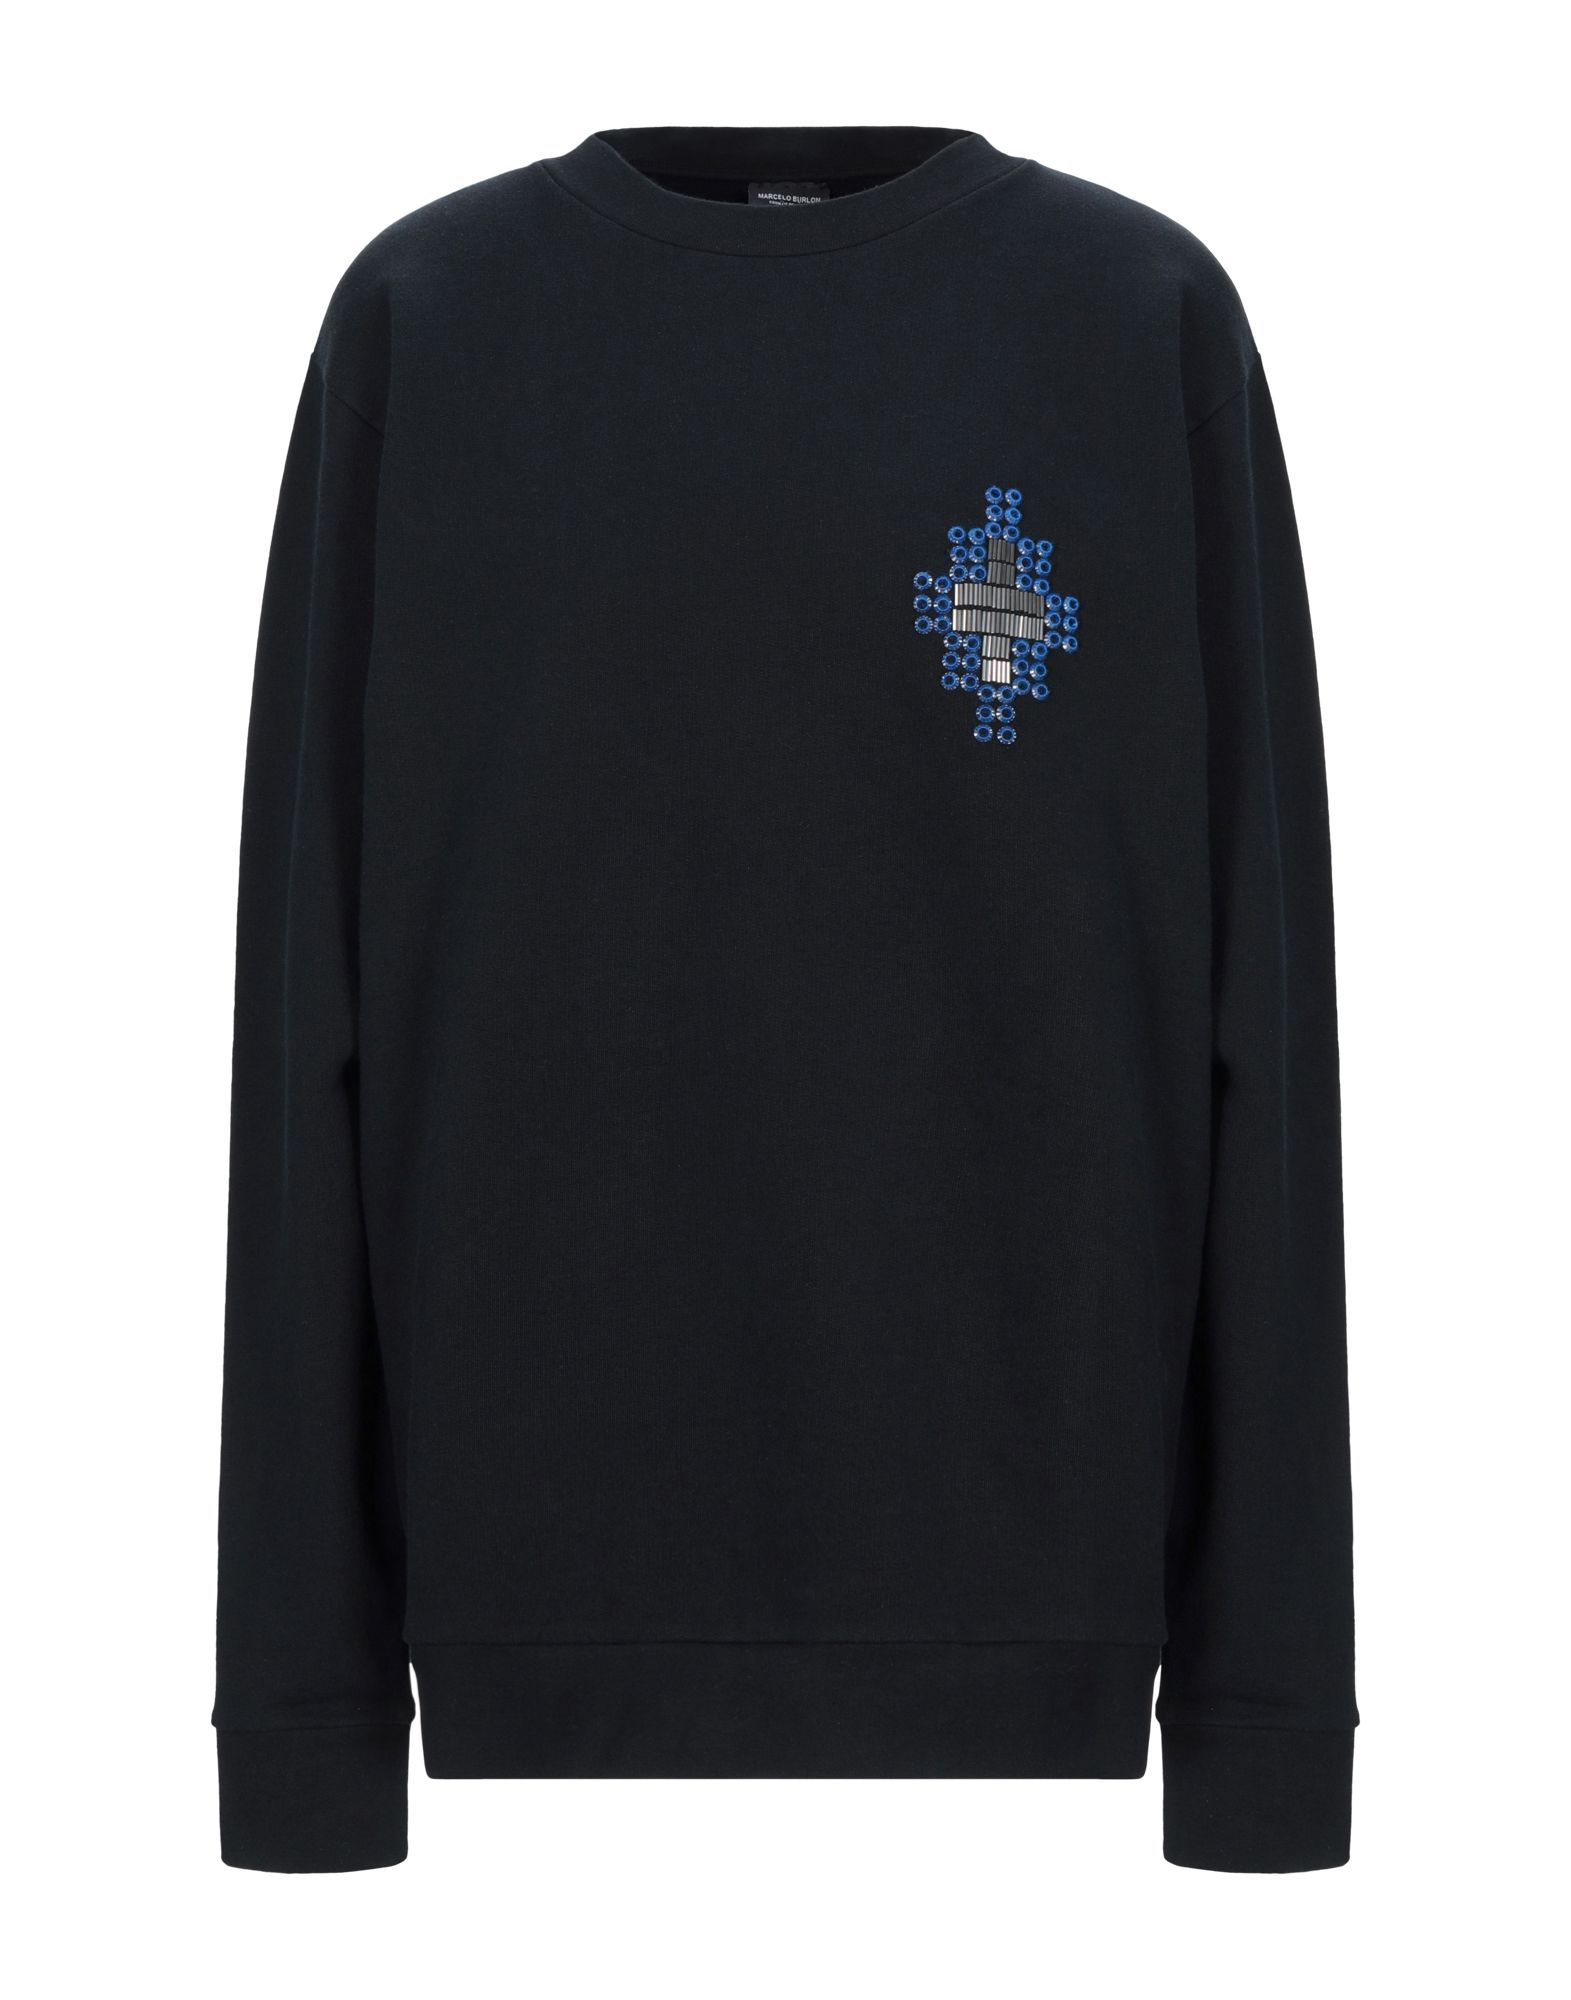 MARCELO BURLON Sweatshirts. beads, solid color, round collar, long sleeves, french terry lining. 100% Cotton